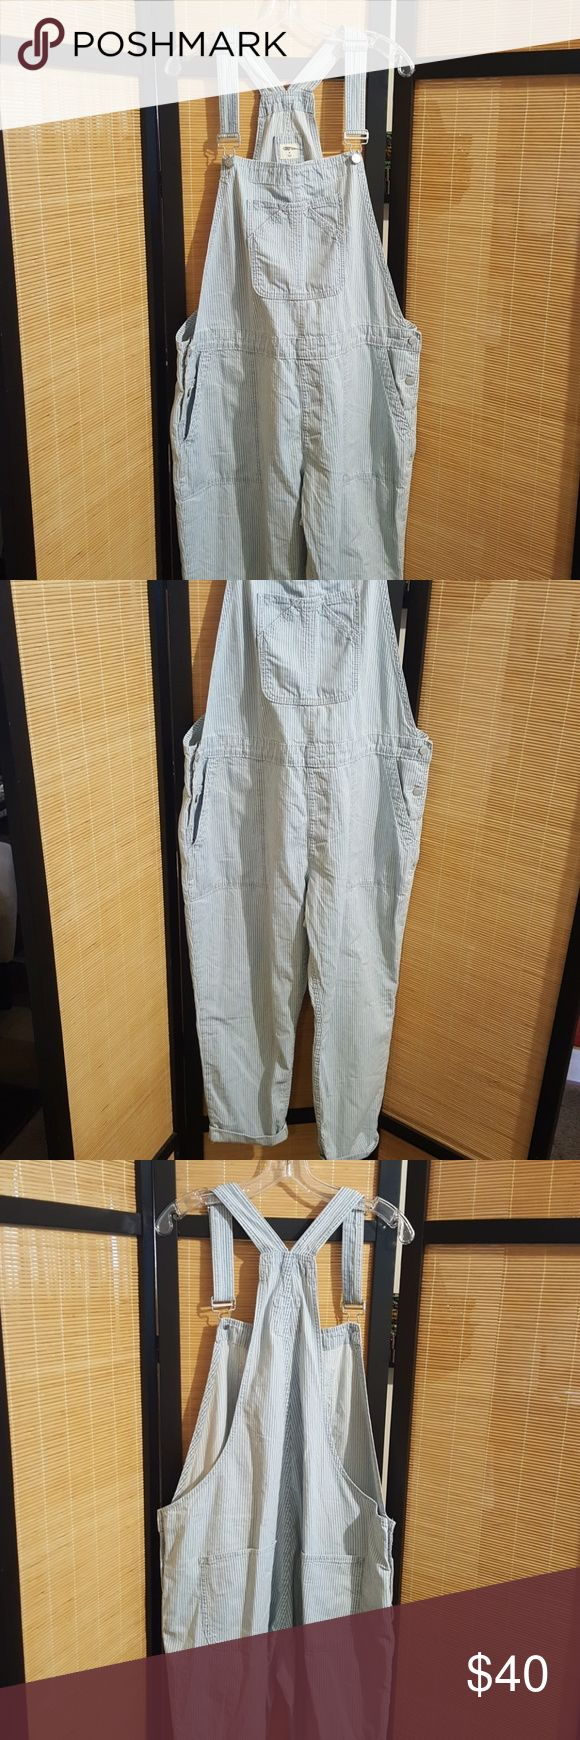 GAP PAINTERS OVERALLS Stylish denim overalls rare find new without tags,xl no trades will except reasonable offers only GAP Pants Jumpsuits & Rompers